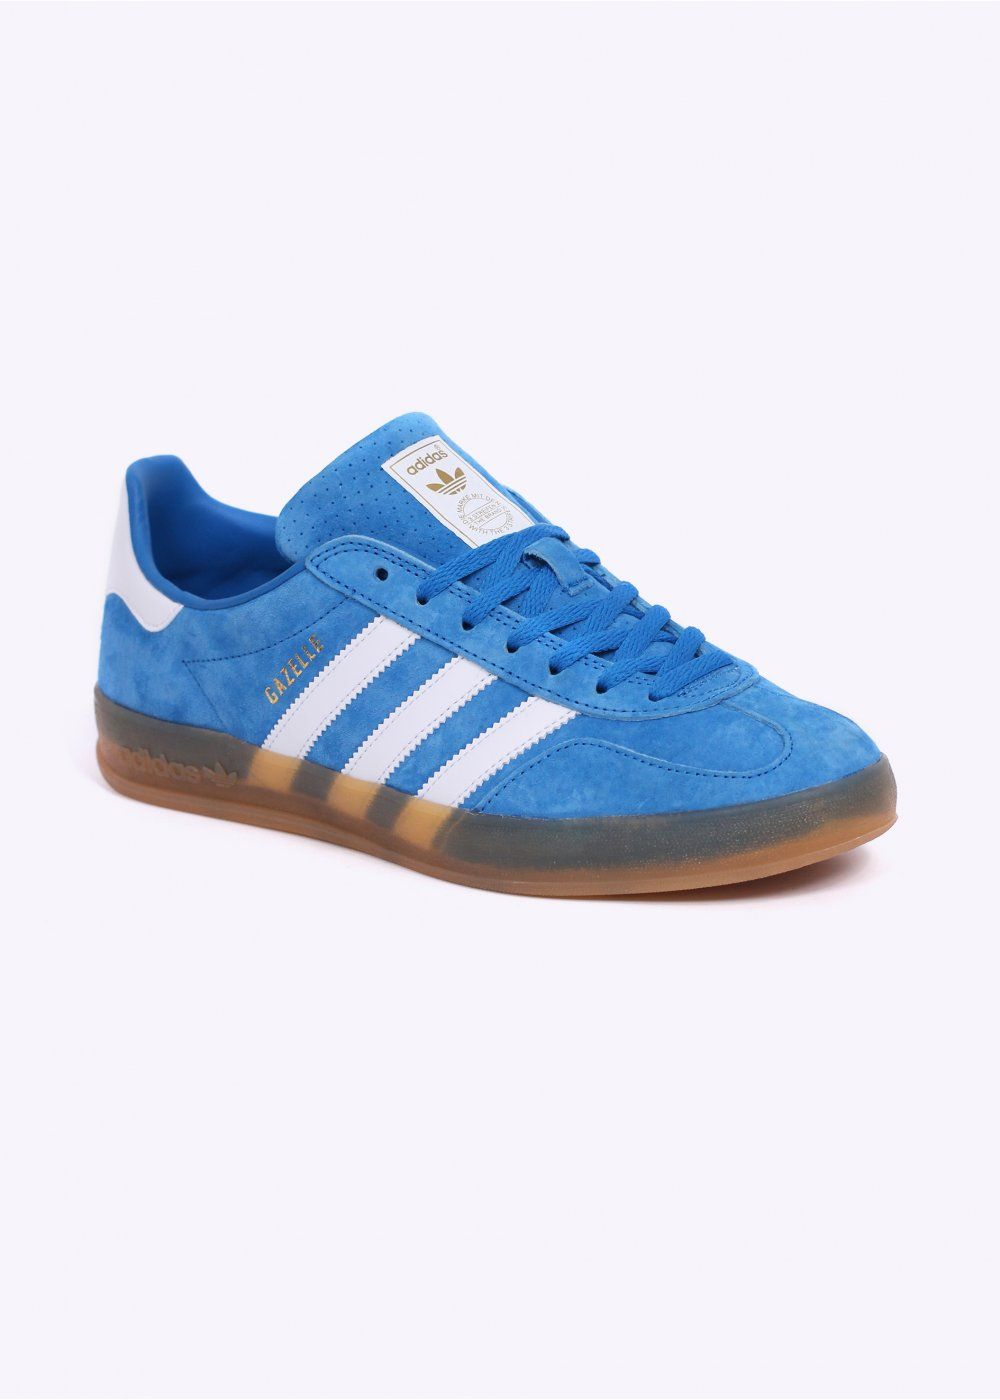 sale retailer 14771 cd21c adidas Gazelle OG Indoor in fantastic Bluebird suedeWhite with  semi-transparent gum sole - the best sole for a Gazelle IMO -)